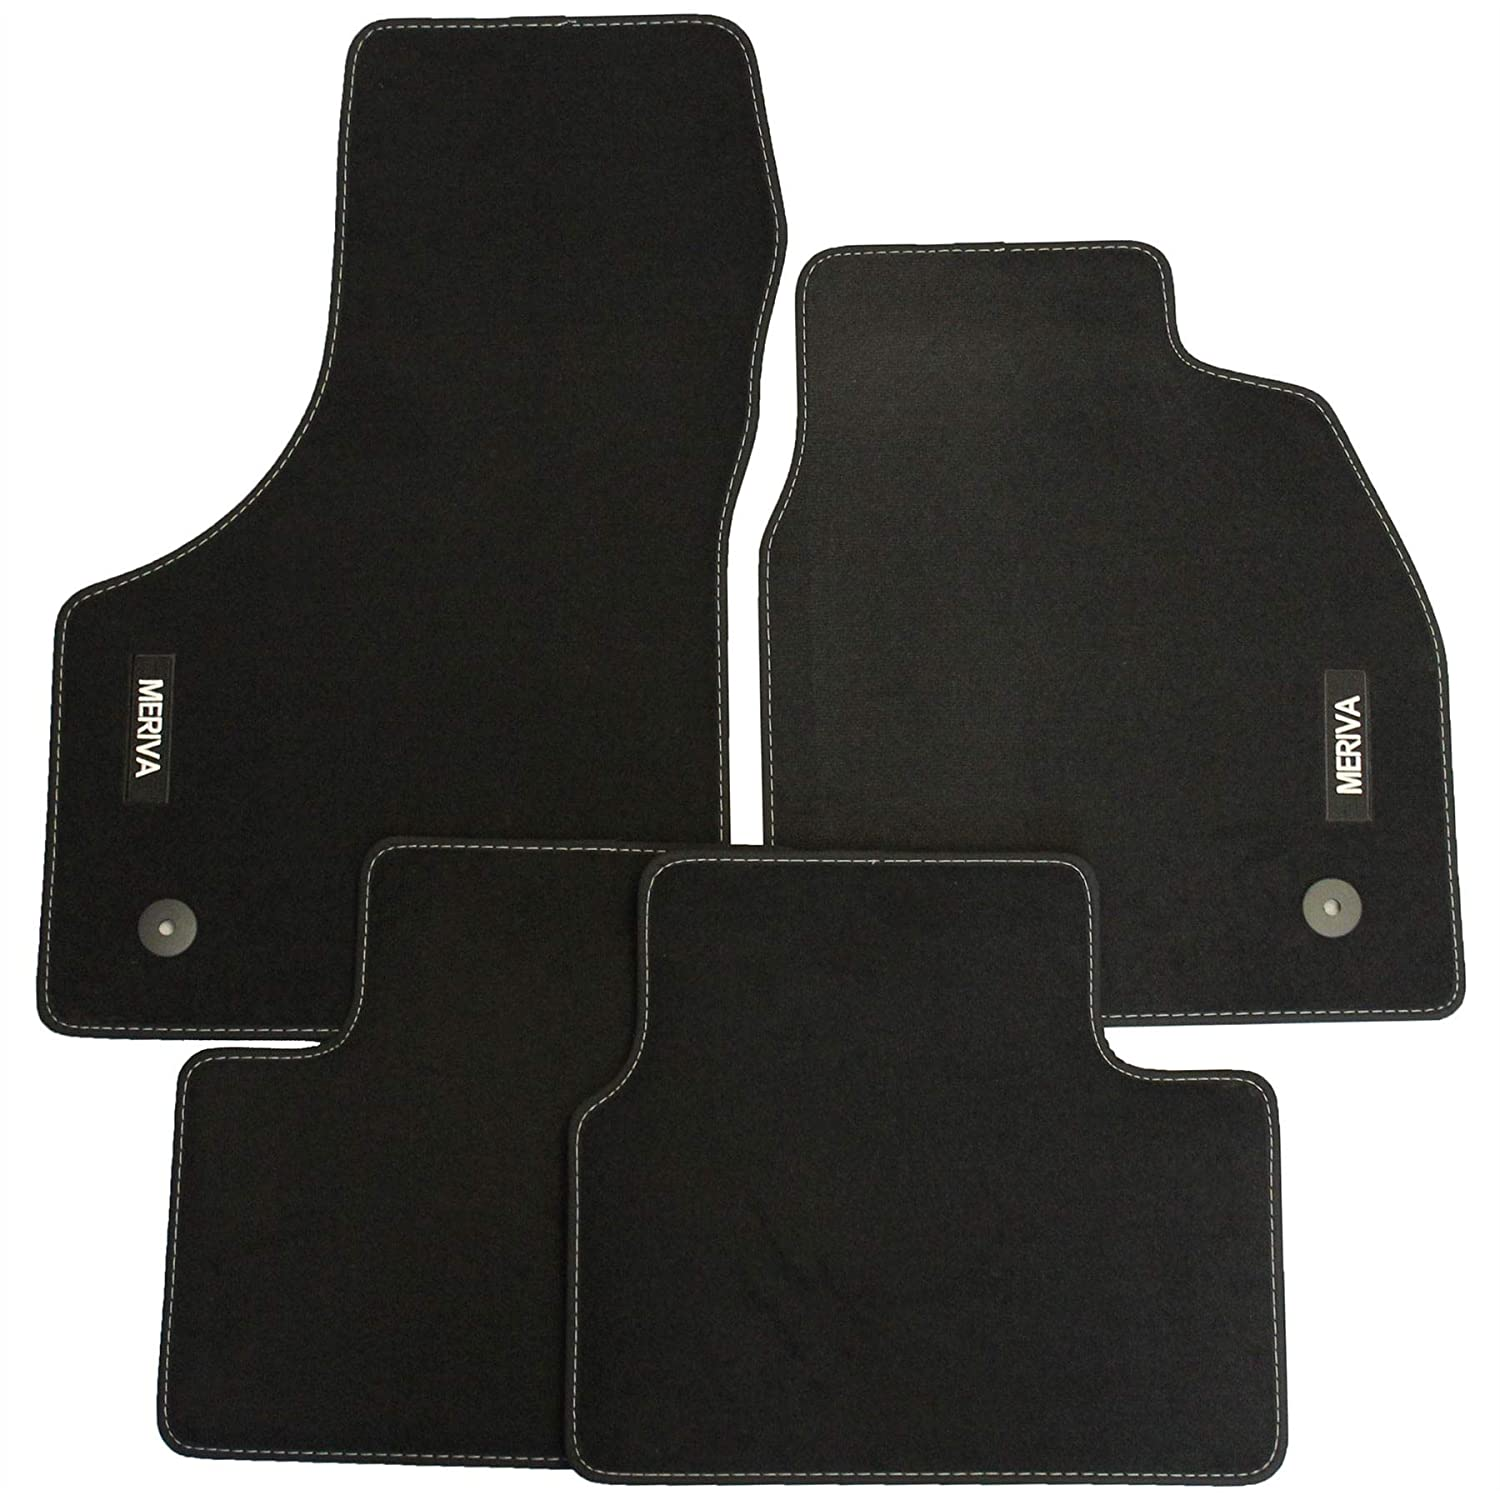 Genuine Vauxhall Meriva B Carpet Footwell Mats Tailored Fitted Black Set of4 Official Vauxhall Meriva B 2010 - 2017 Velour Mats